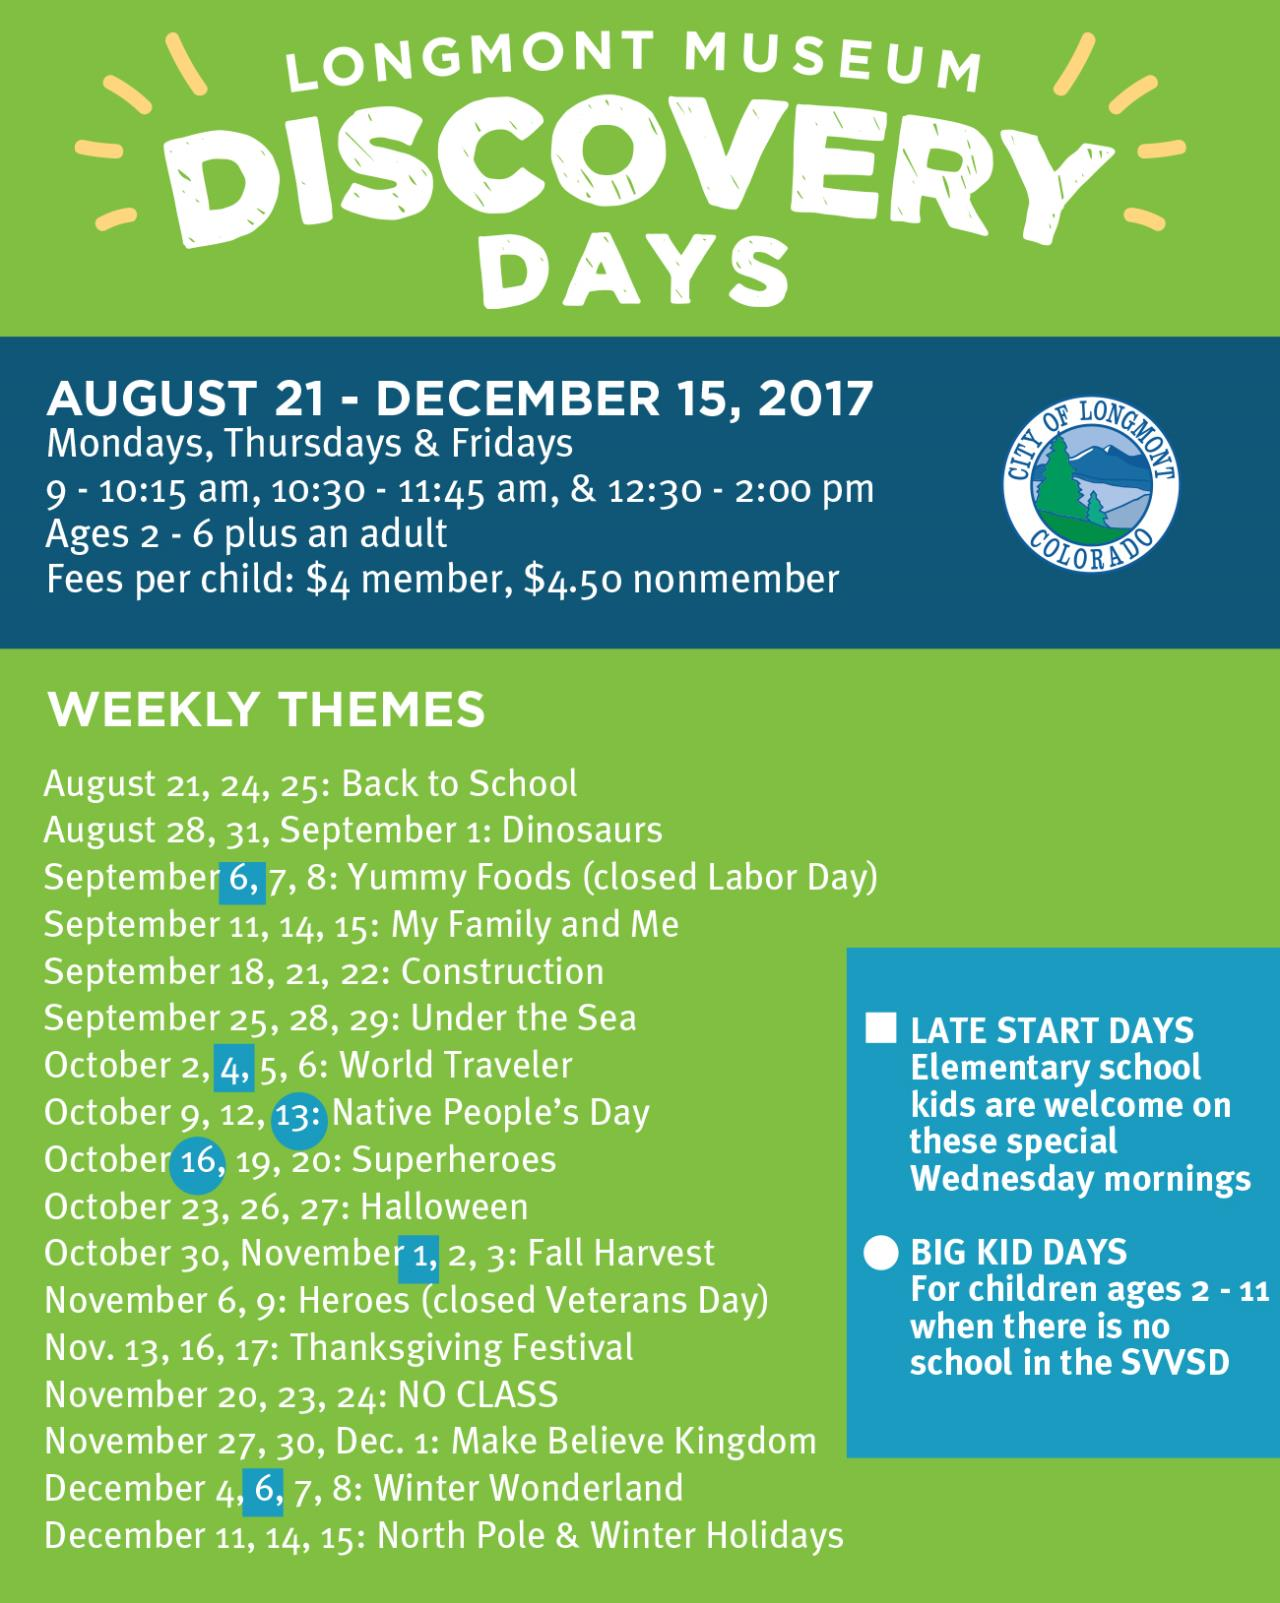 Ddays Fall 2017